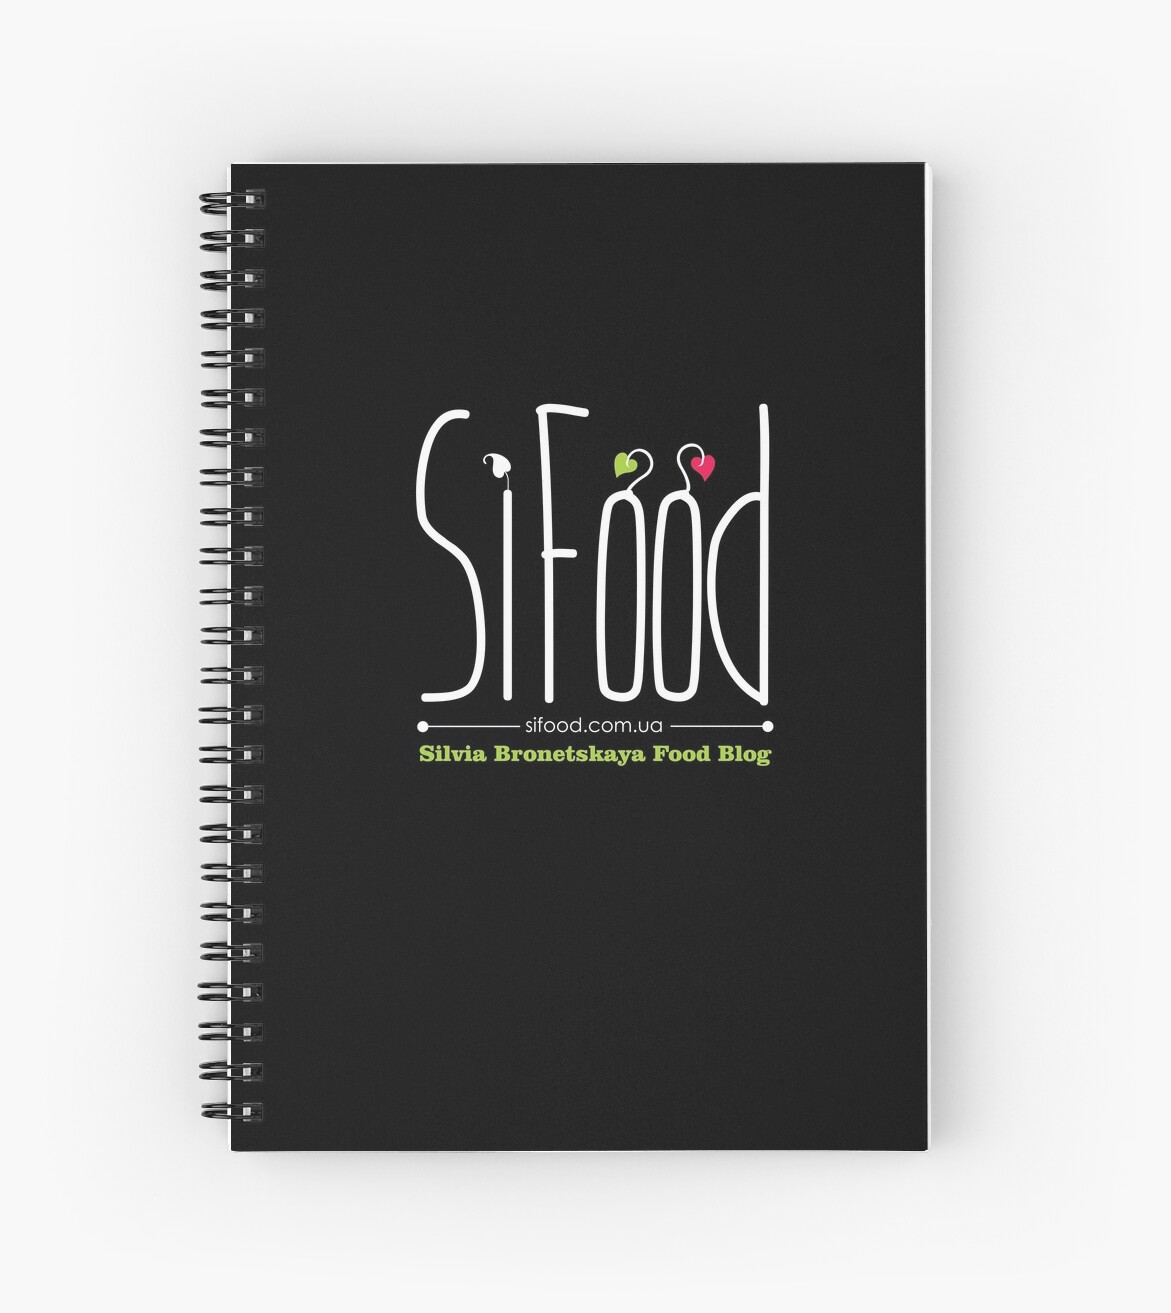 Sifood Black Label by Sifood